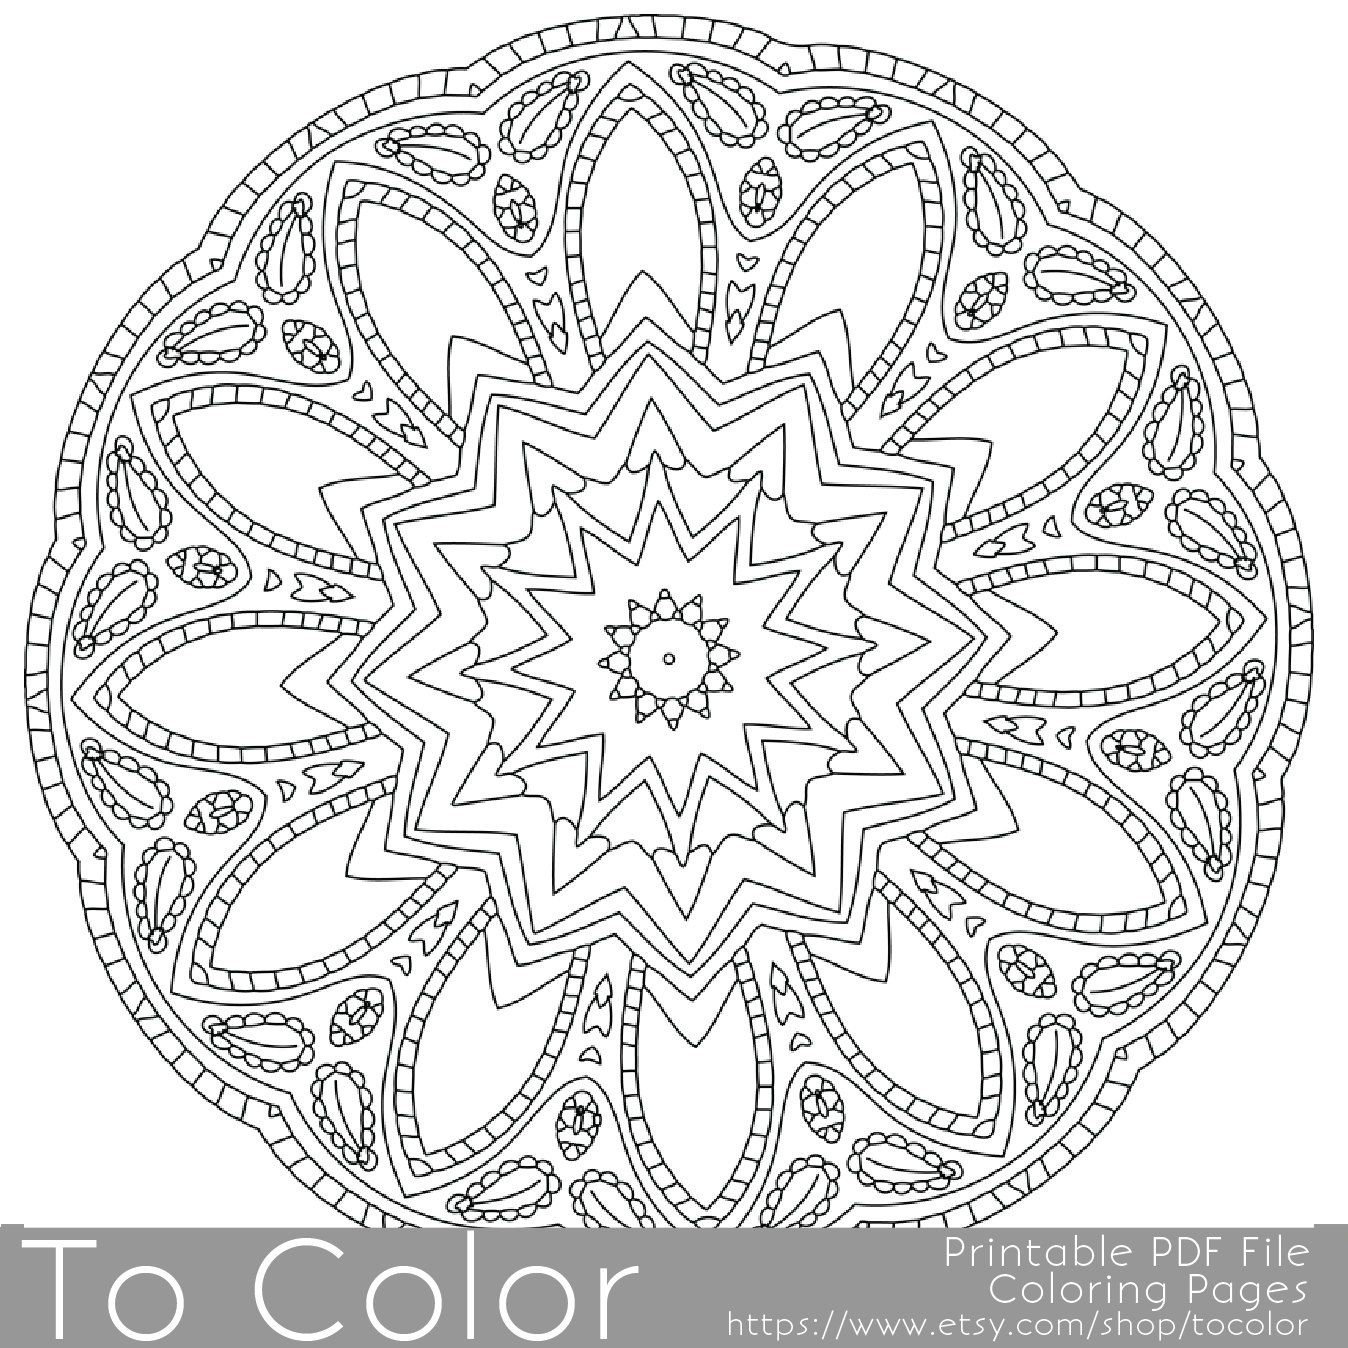 Intricate Printable Coloring Pages for Adults, Gel Pens